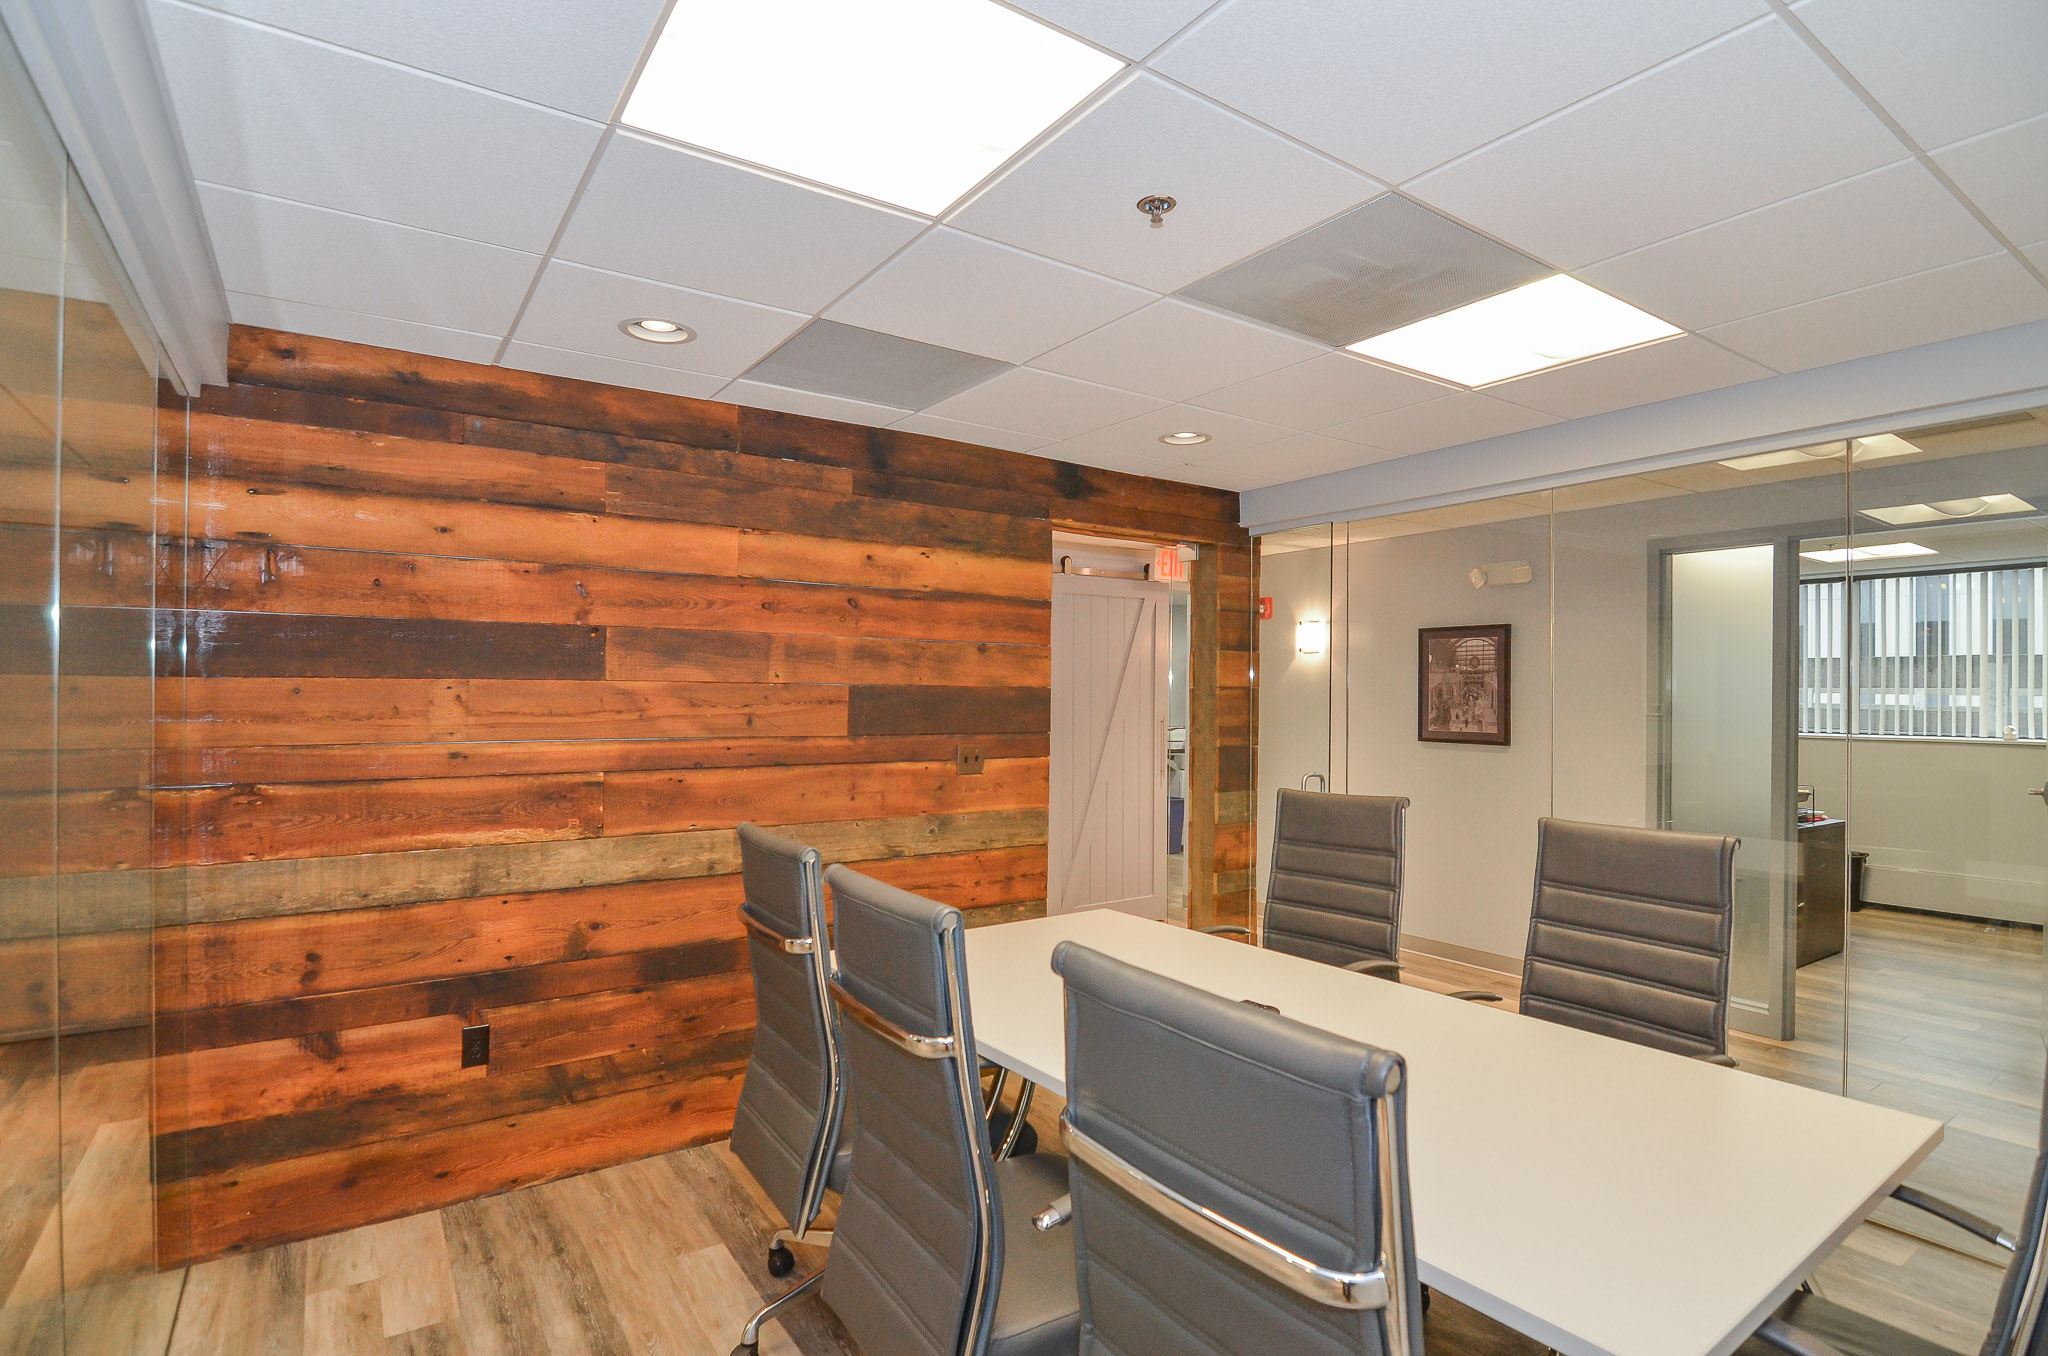 Newton-Wellesley-Primary-Care-Conference-Room-2-HDS-Architecture.jpg